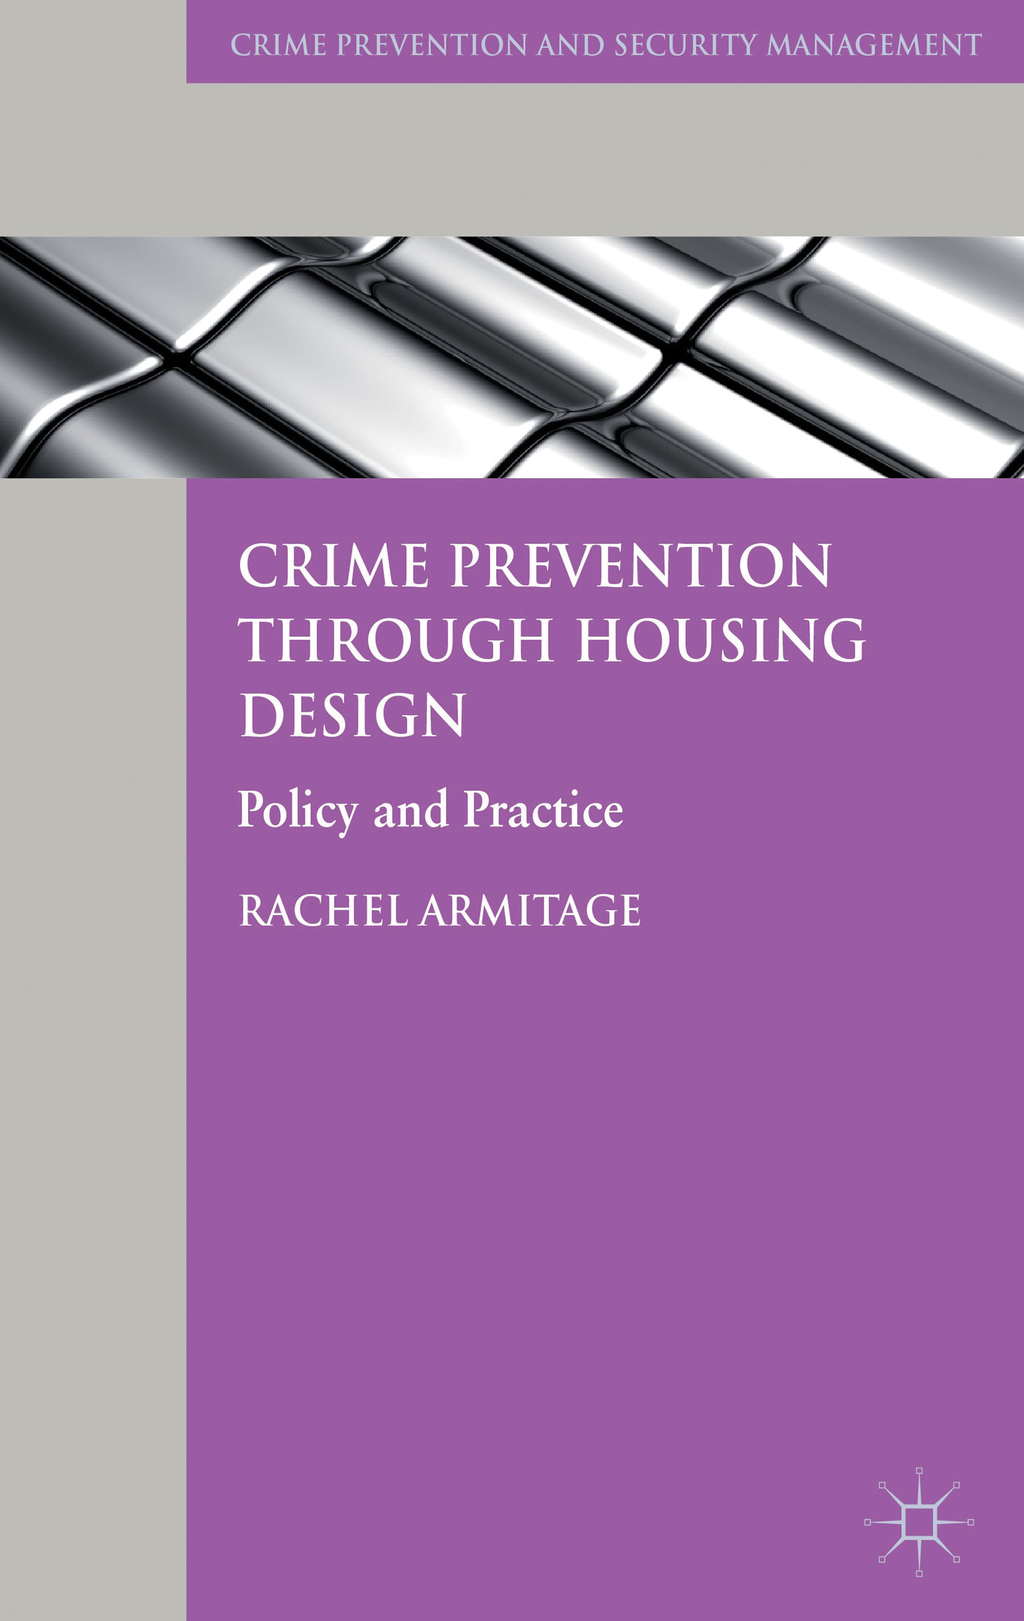 Crime Prevention through Housing Design Policy and Practice